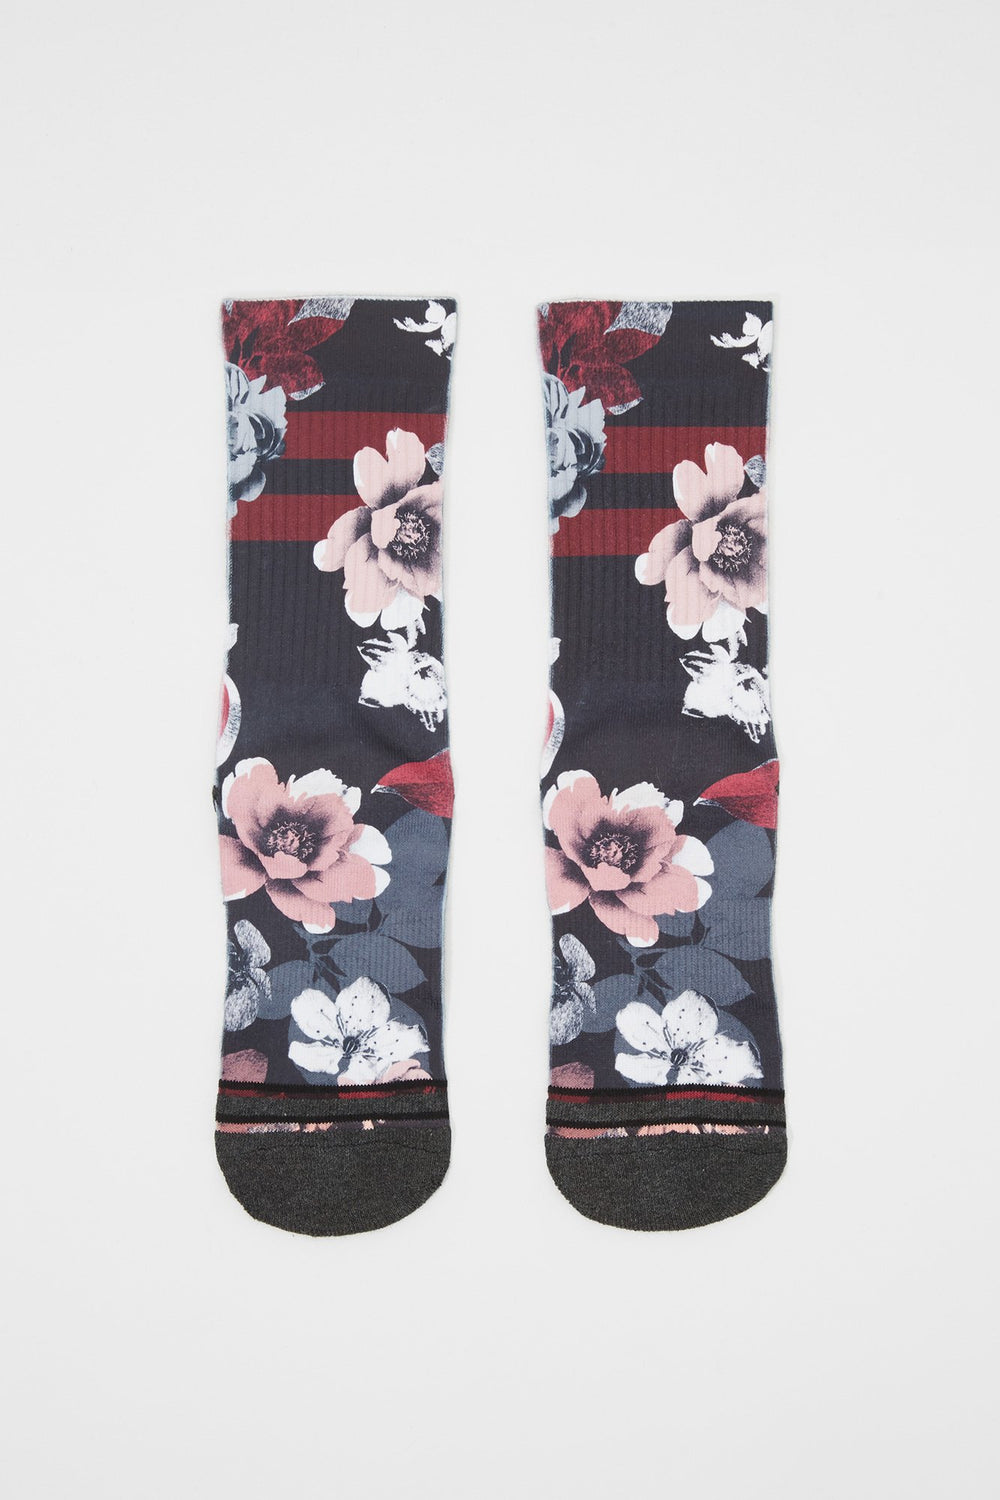 Zoo York Womens Sublimated Floral Print Crew Socks Multi